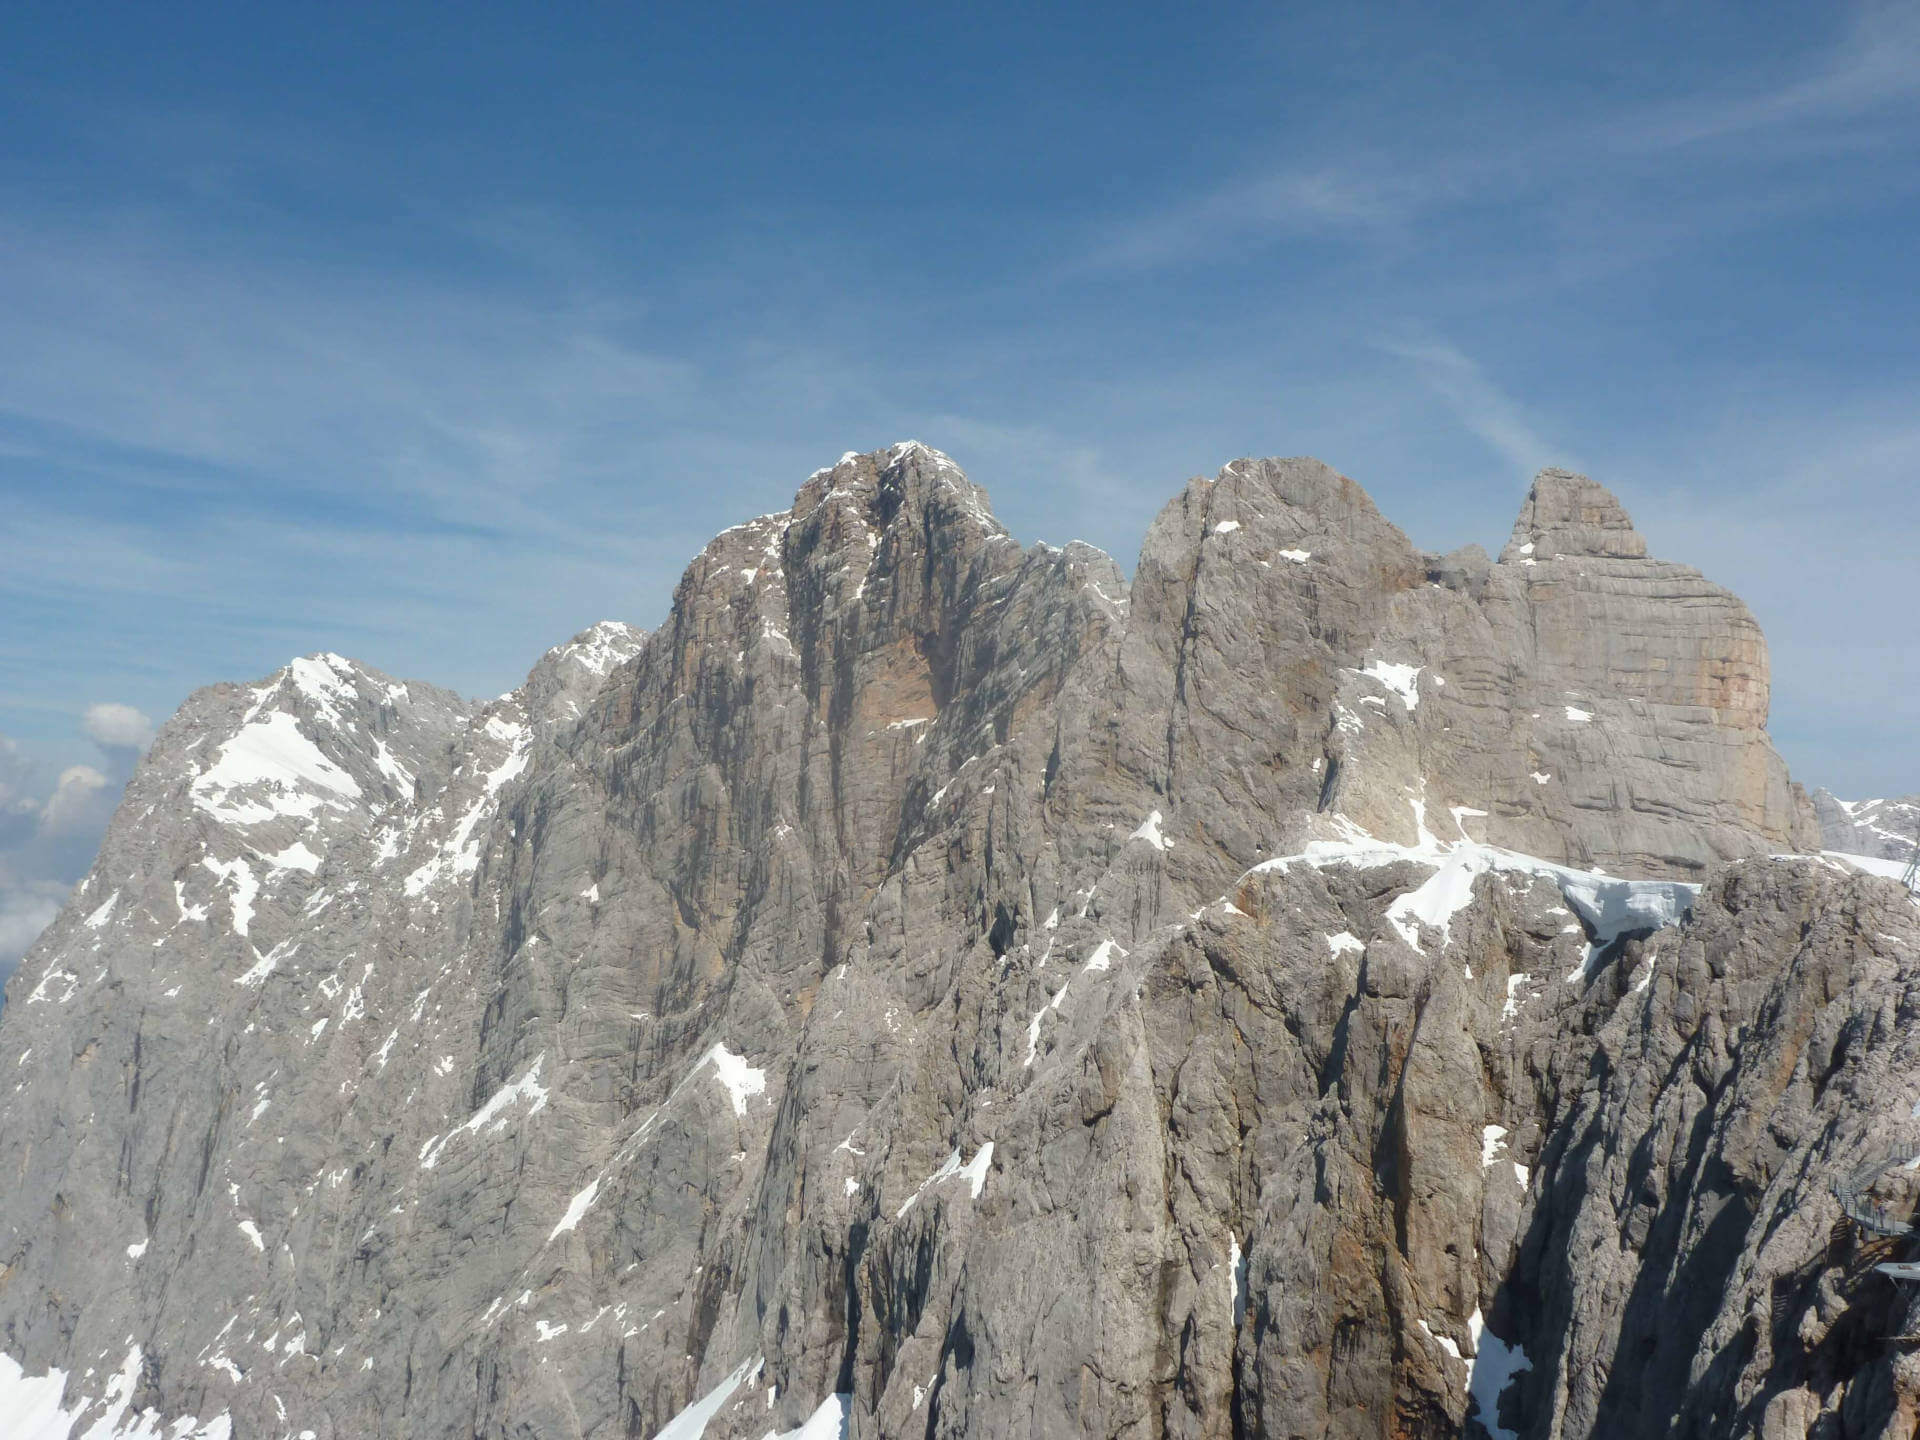 The summits of the Dachstein massif.